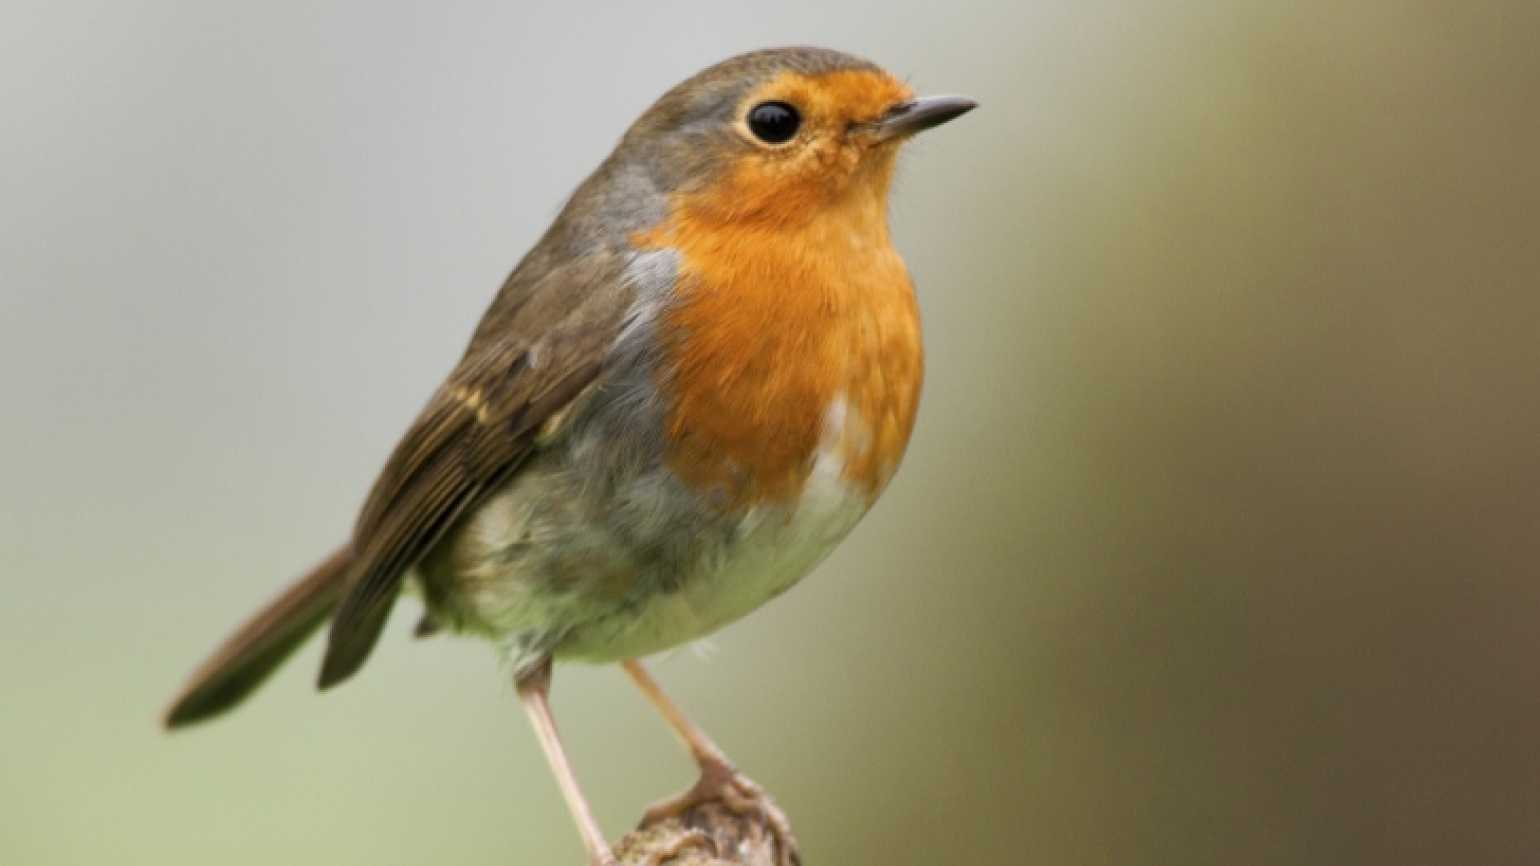 A robin on a branch.